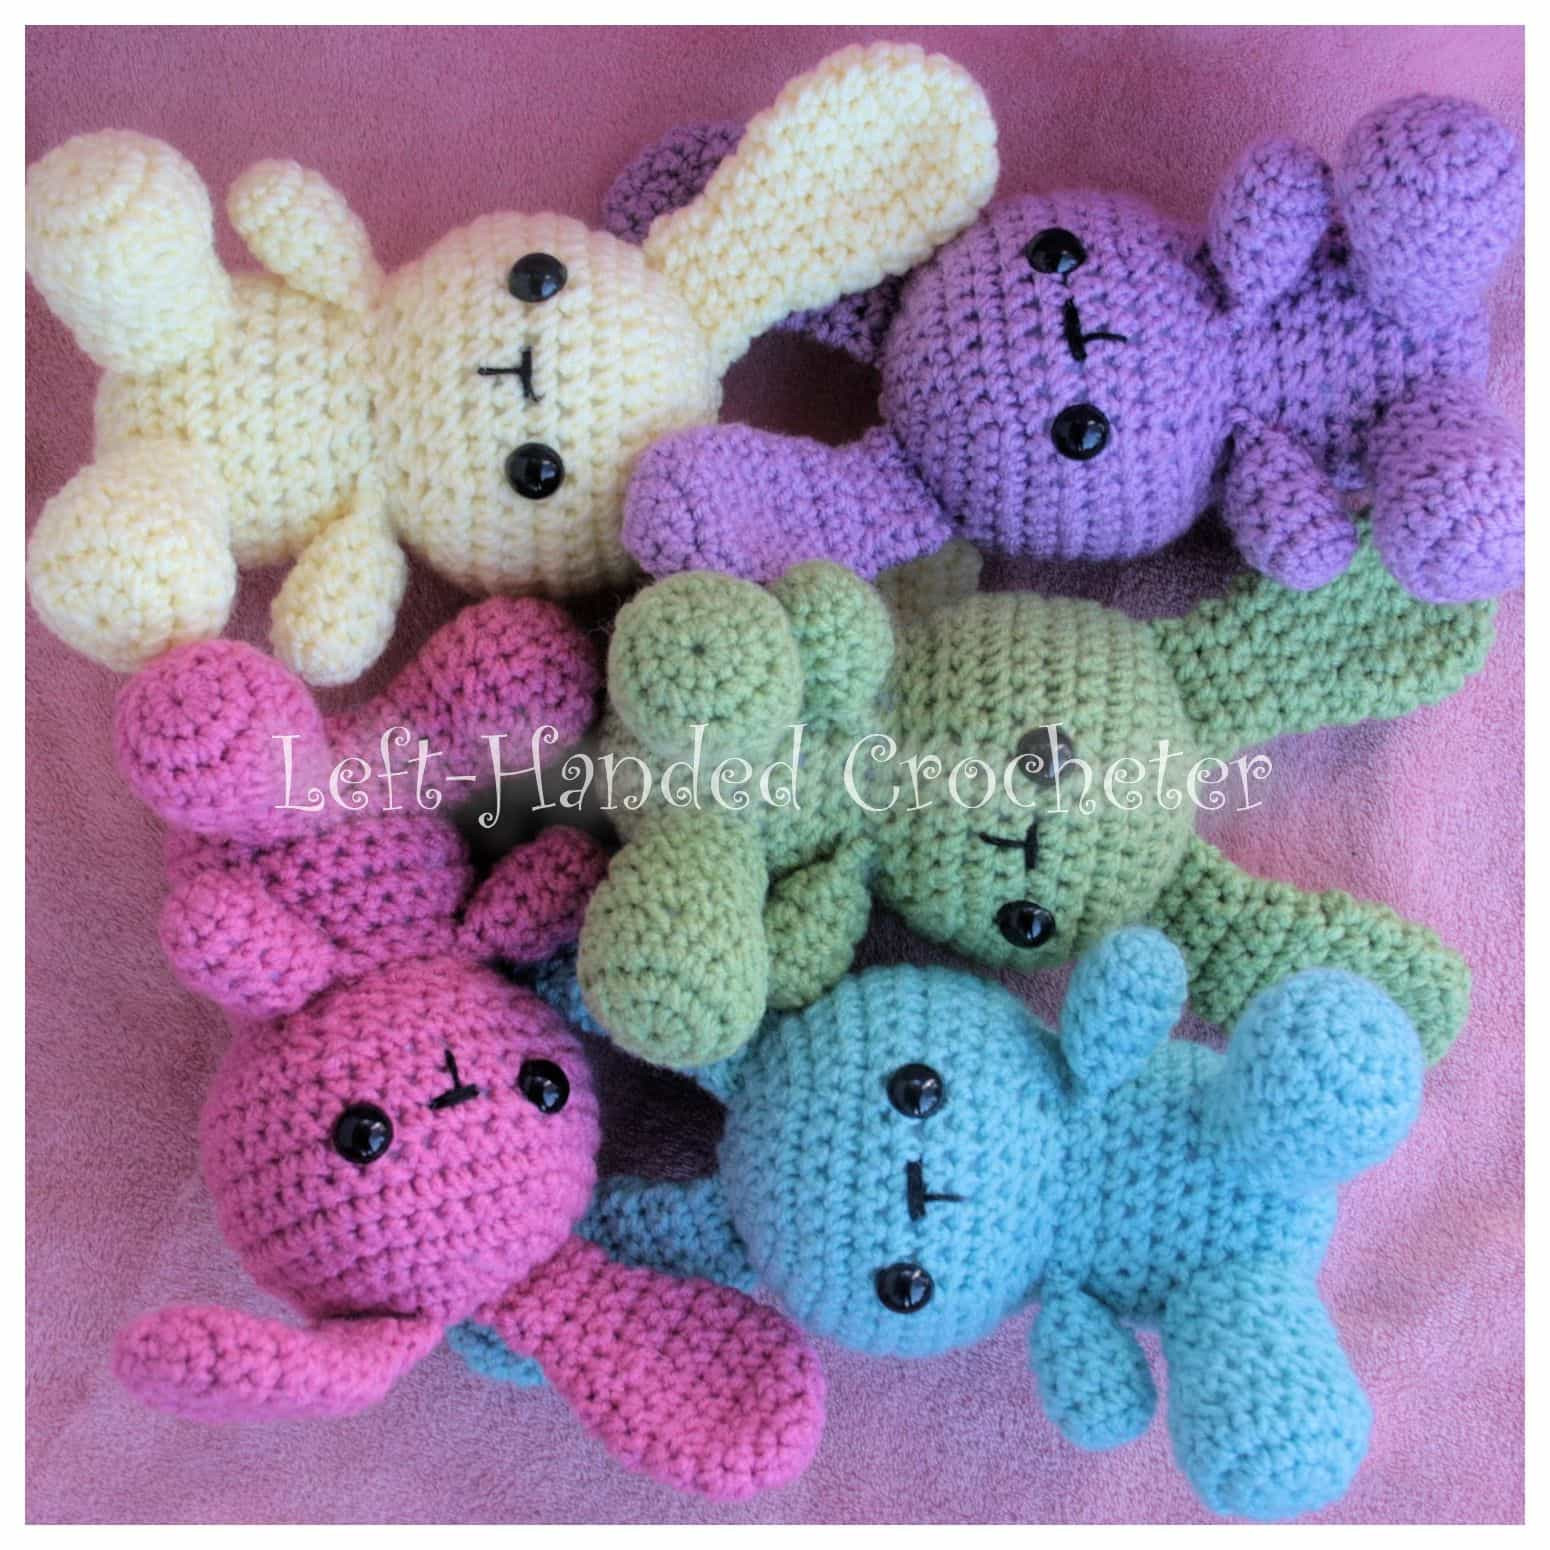 Crochet Easter Bunny Pattern Beautiful Free Easter Crochet Patterns the Best Collection Of Amazing 42 Photos Crochet Easter Bunny Pattern